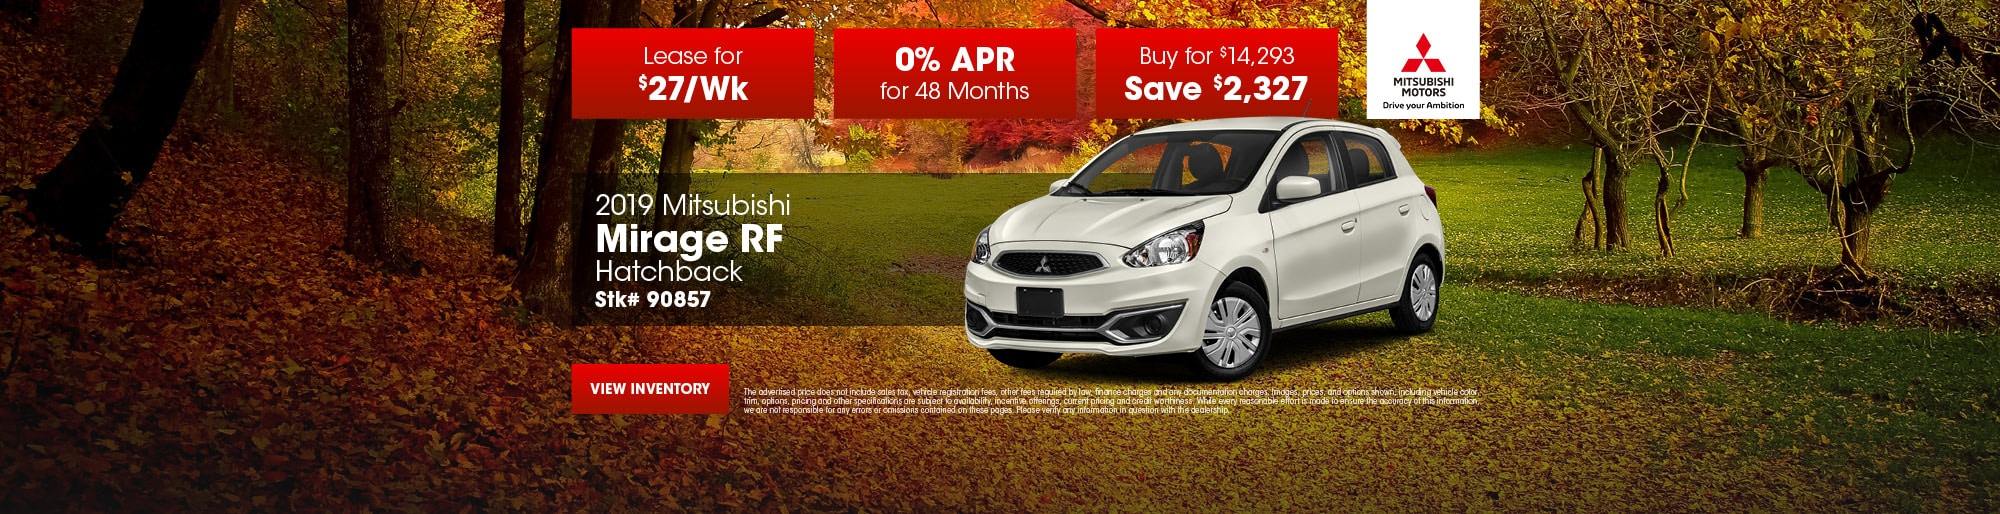 Fairfield Mitsubishi In Fairfield Ct New Used Car